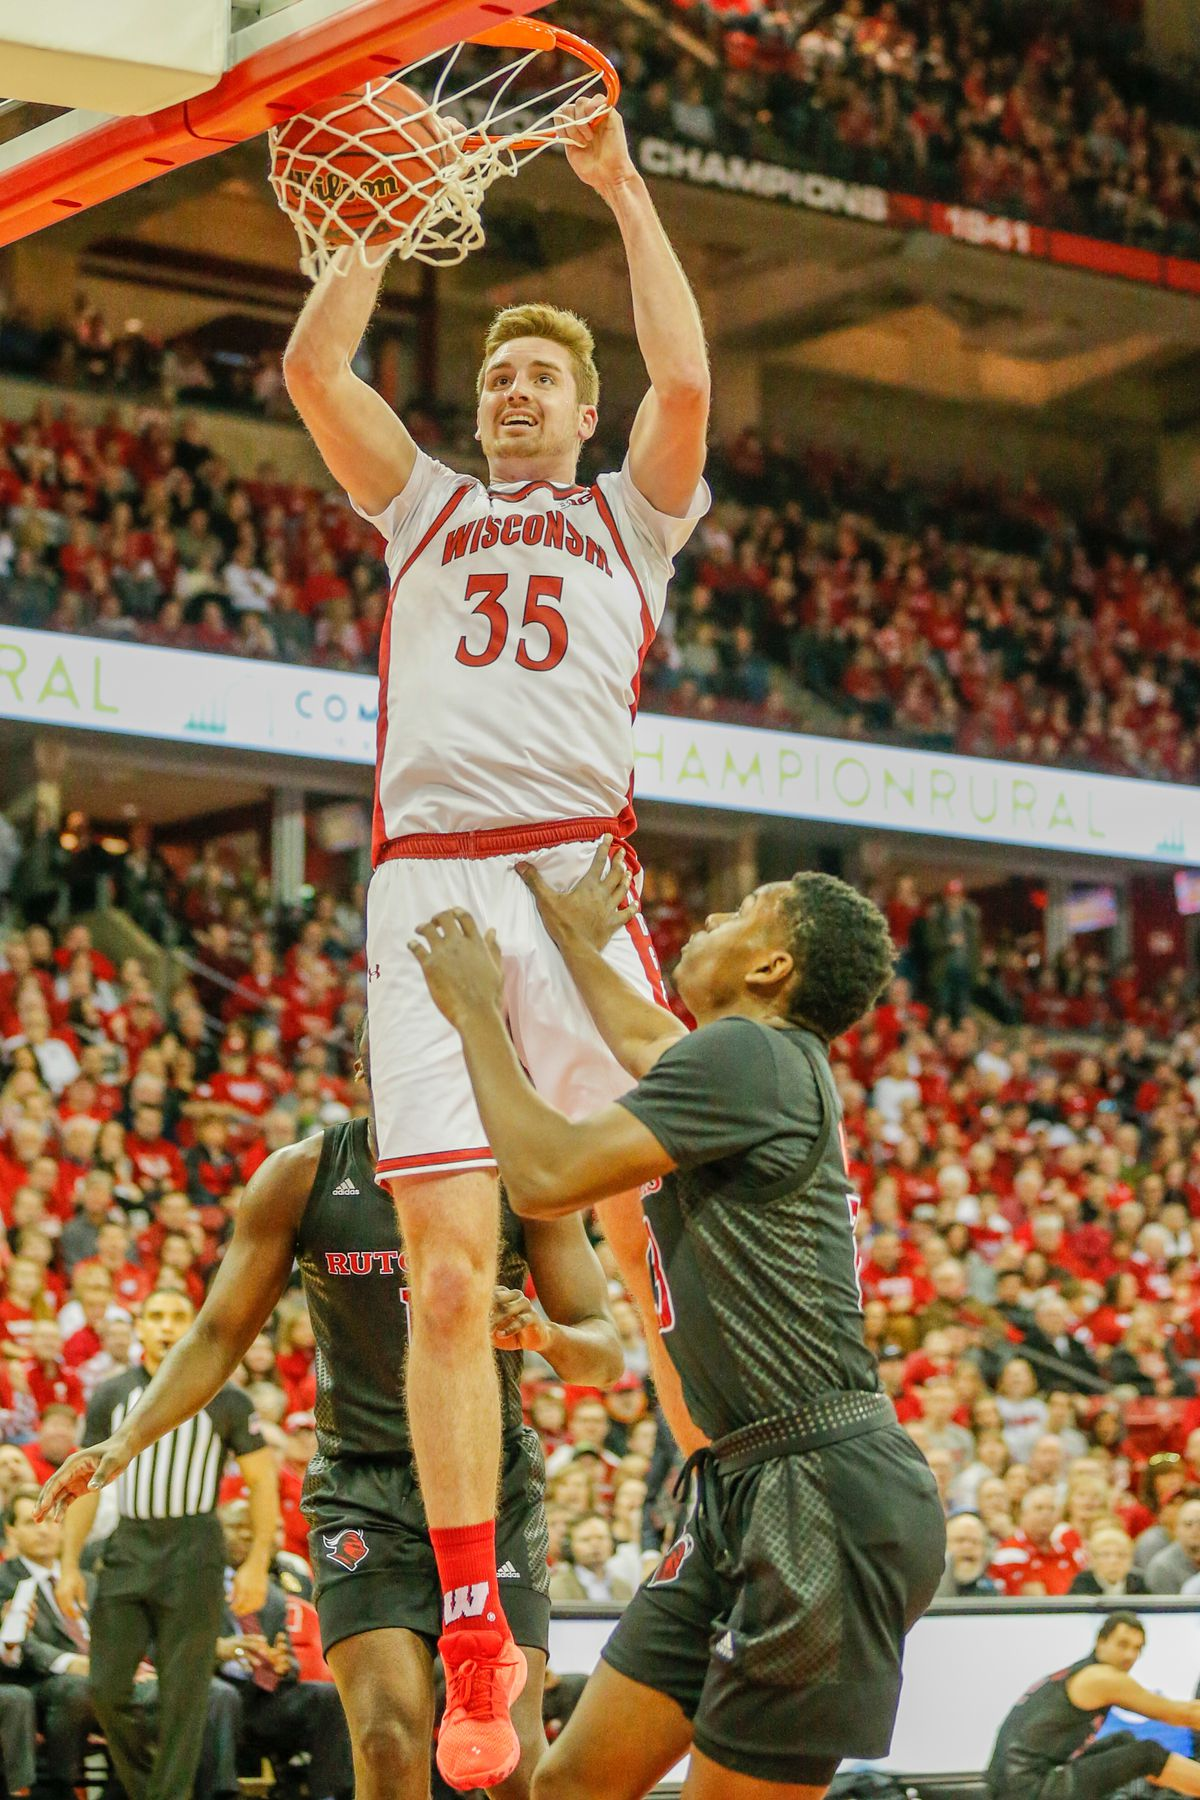 COLLEGE BASKETBALL: FEB 23 Rutgers at Wisconsin